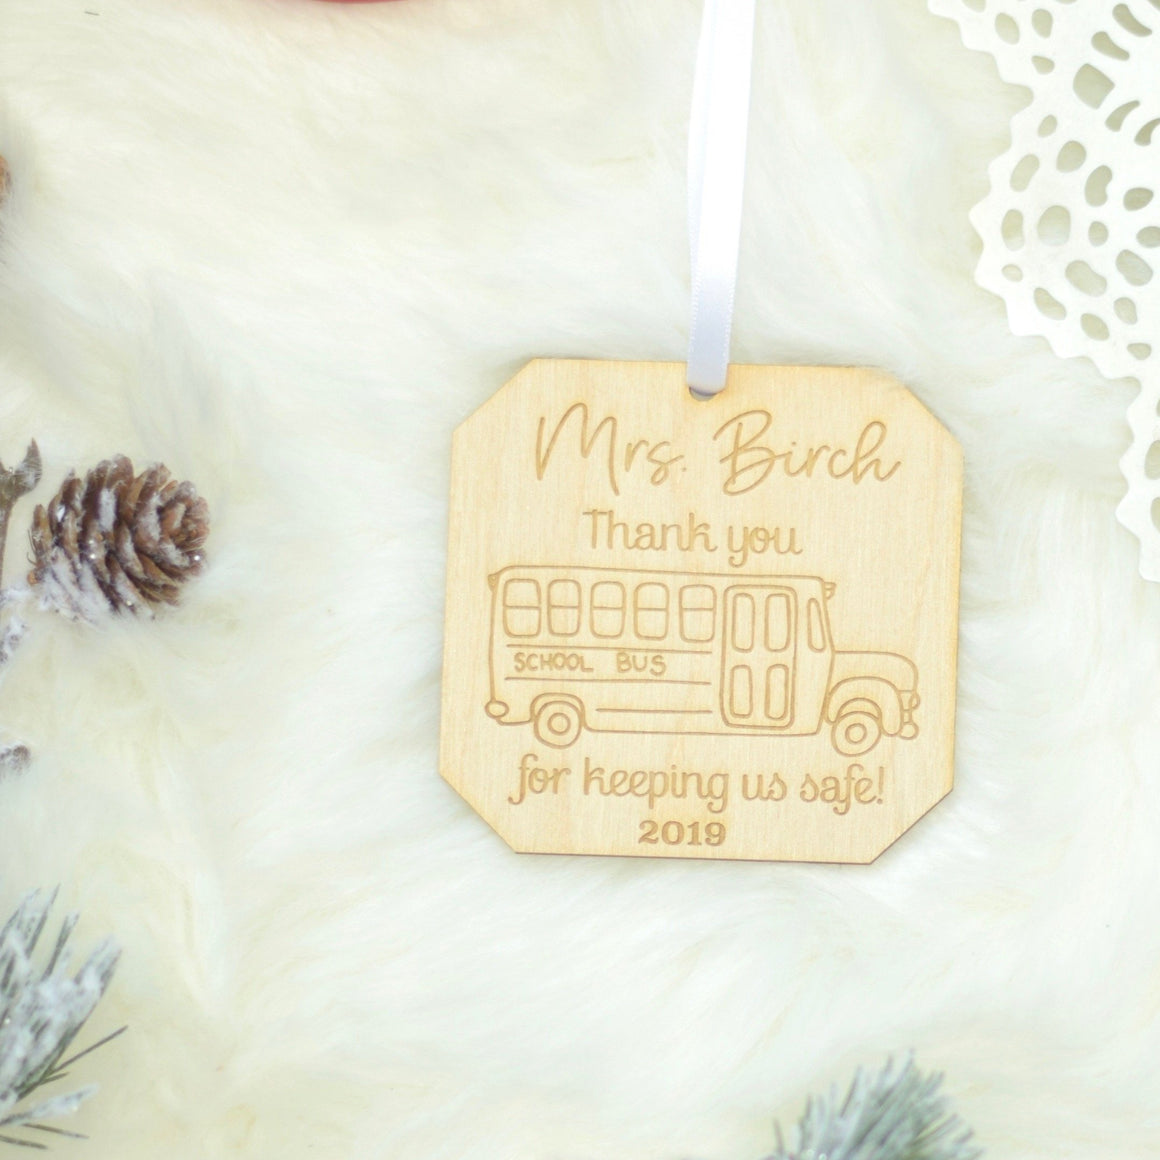 Mrs Birch Thank you for keeping us safe Christmas ornament with a bus. Lying on a piece of white fur with decorations around it